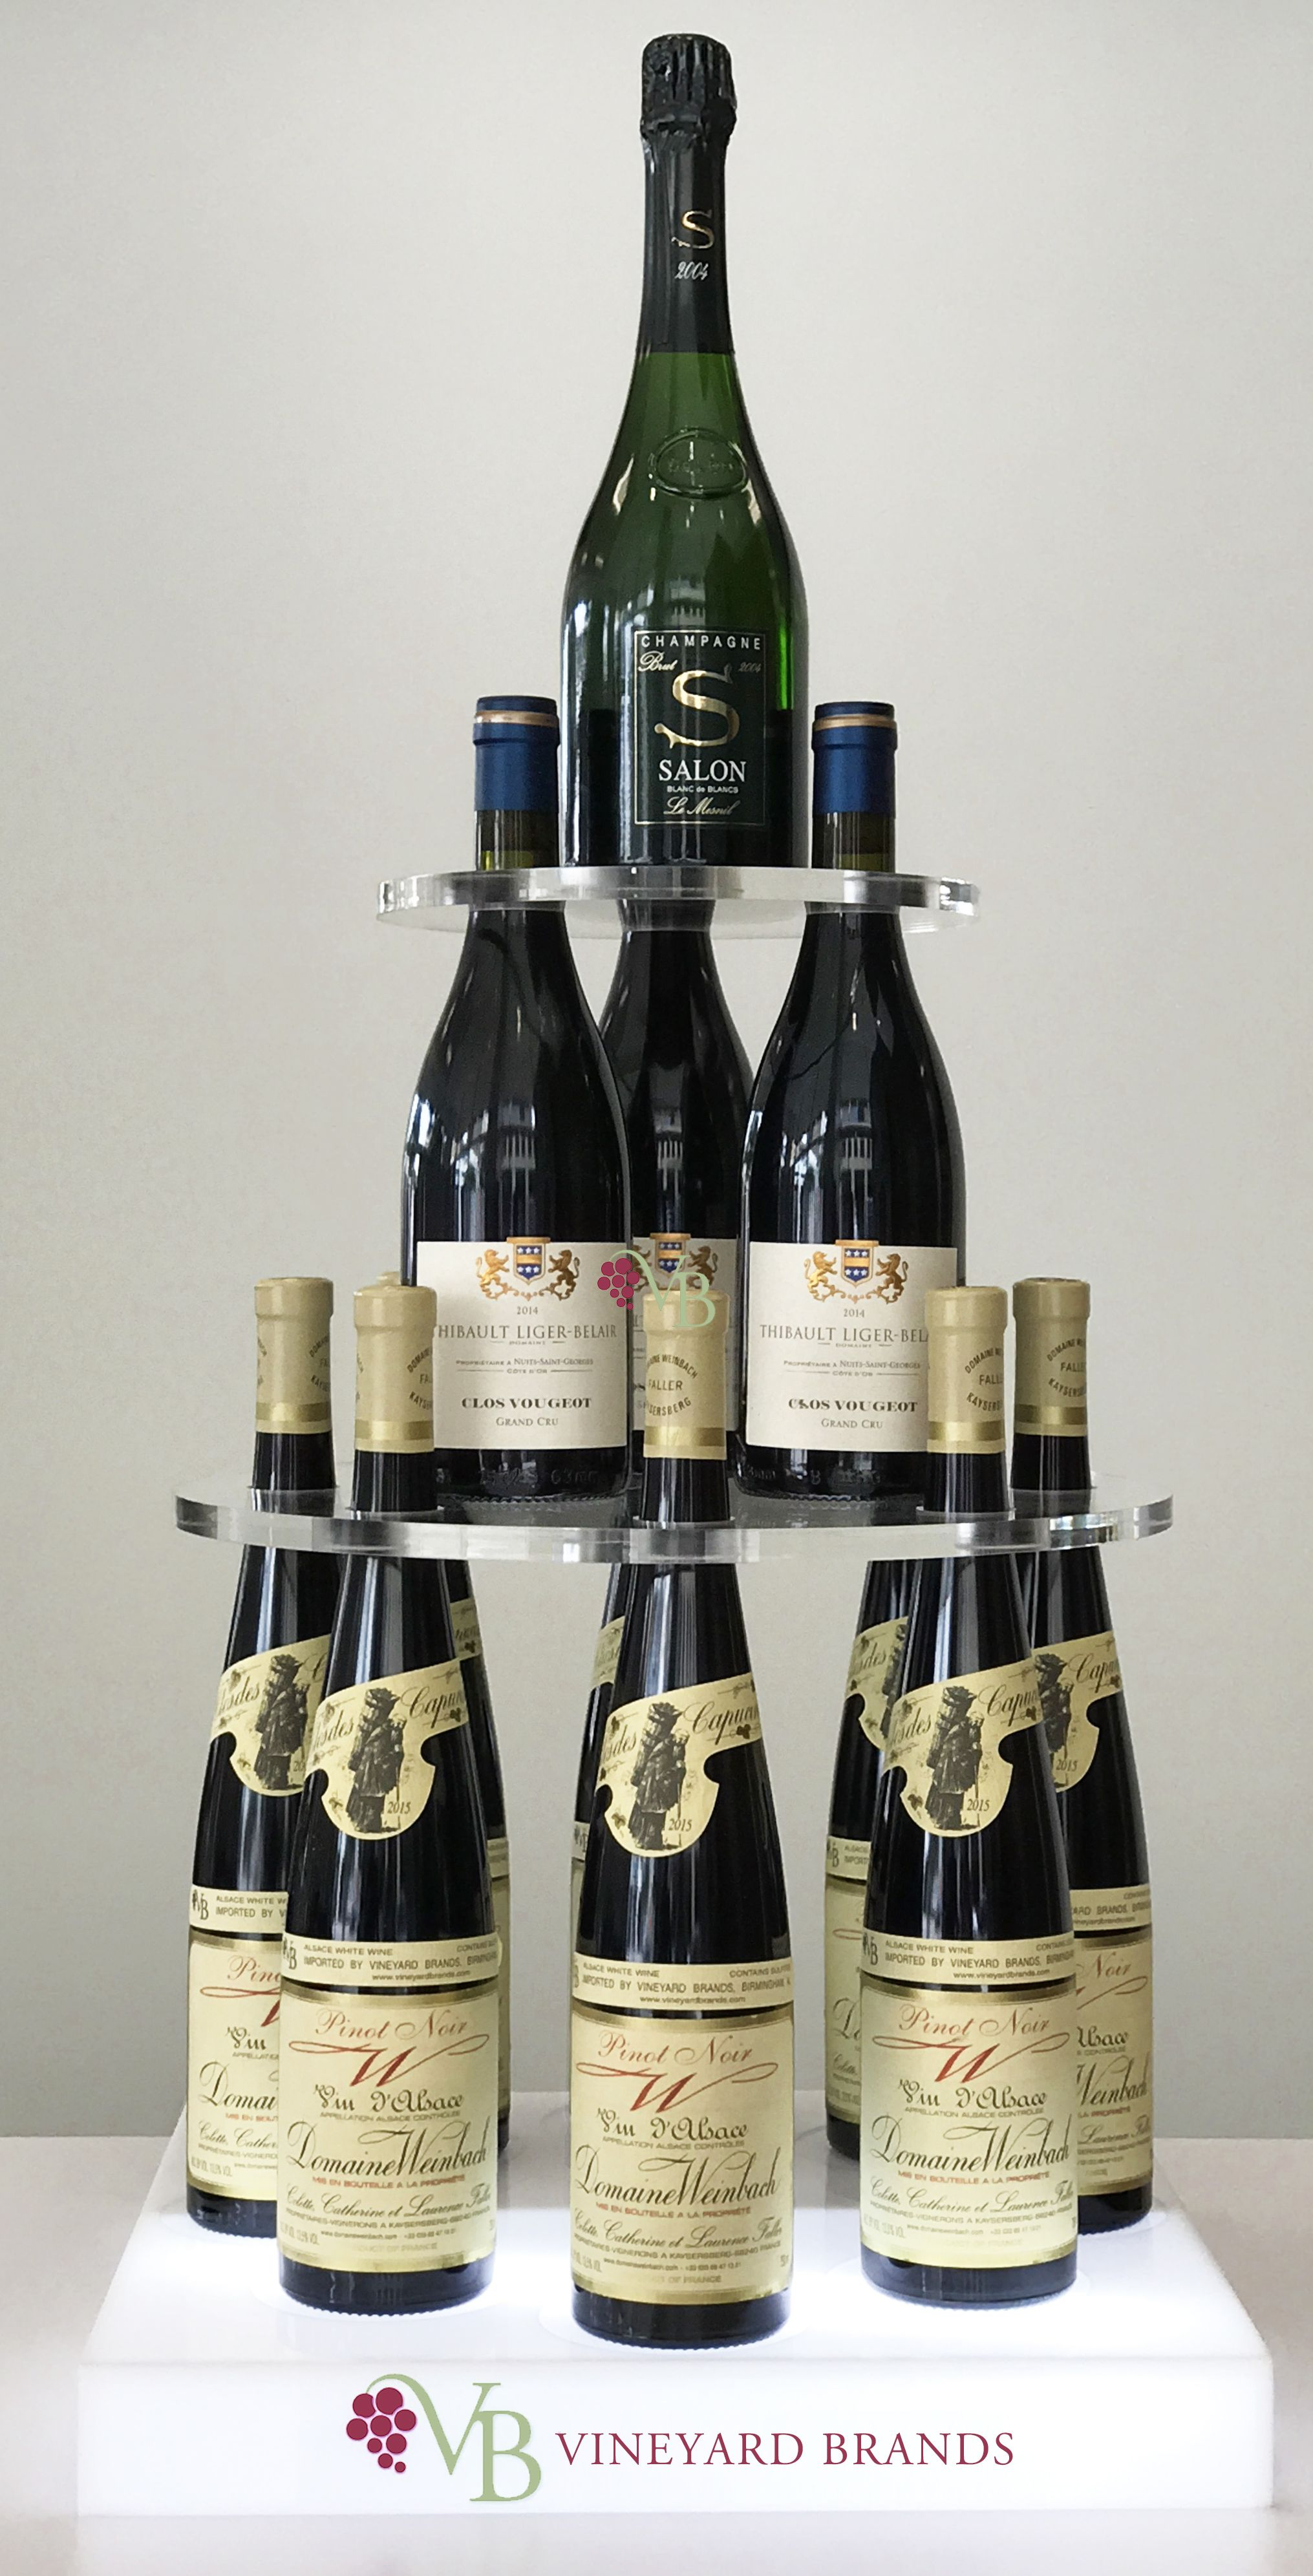 Salon Champagne Wishful Wining Domaine Weinbach Thibault Liger Belair And